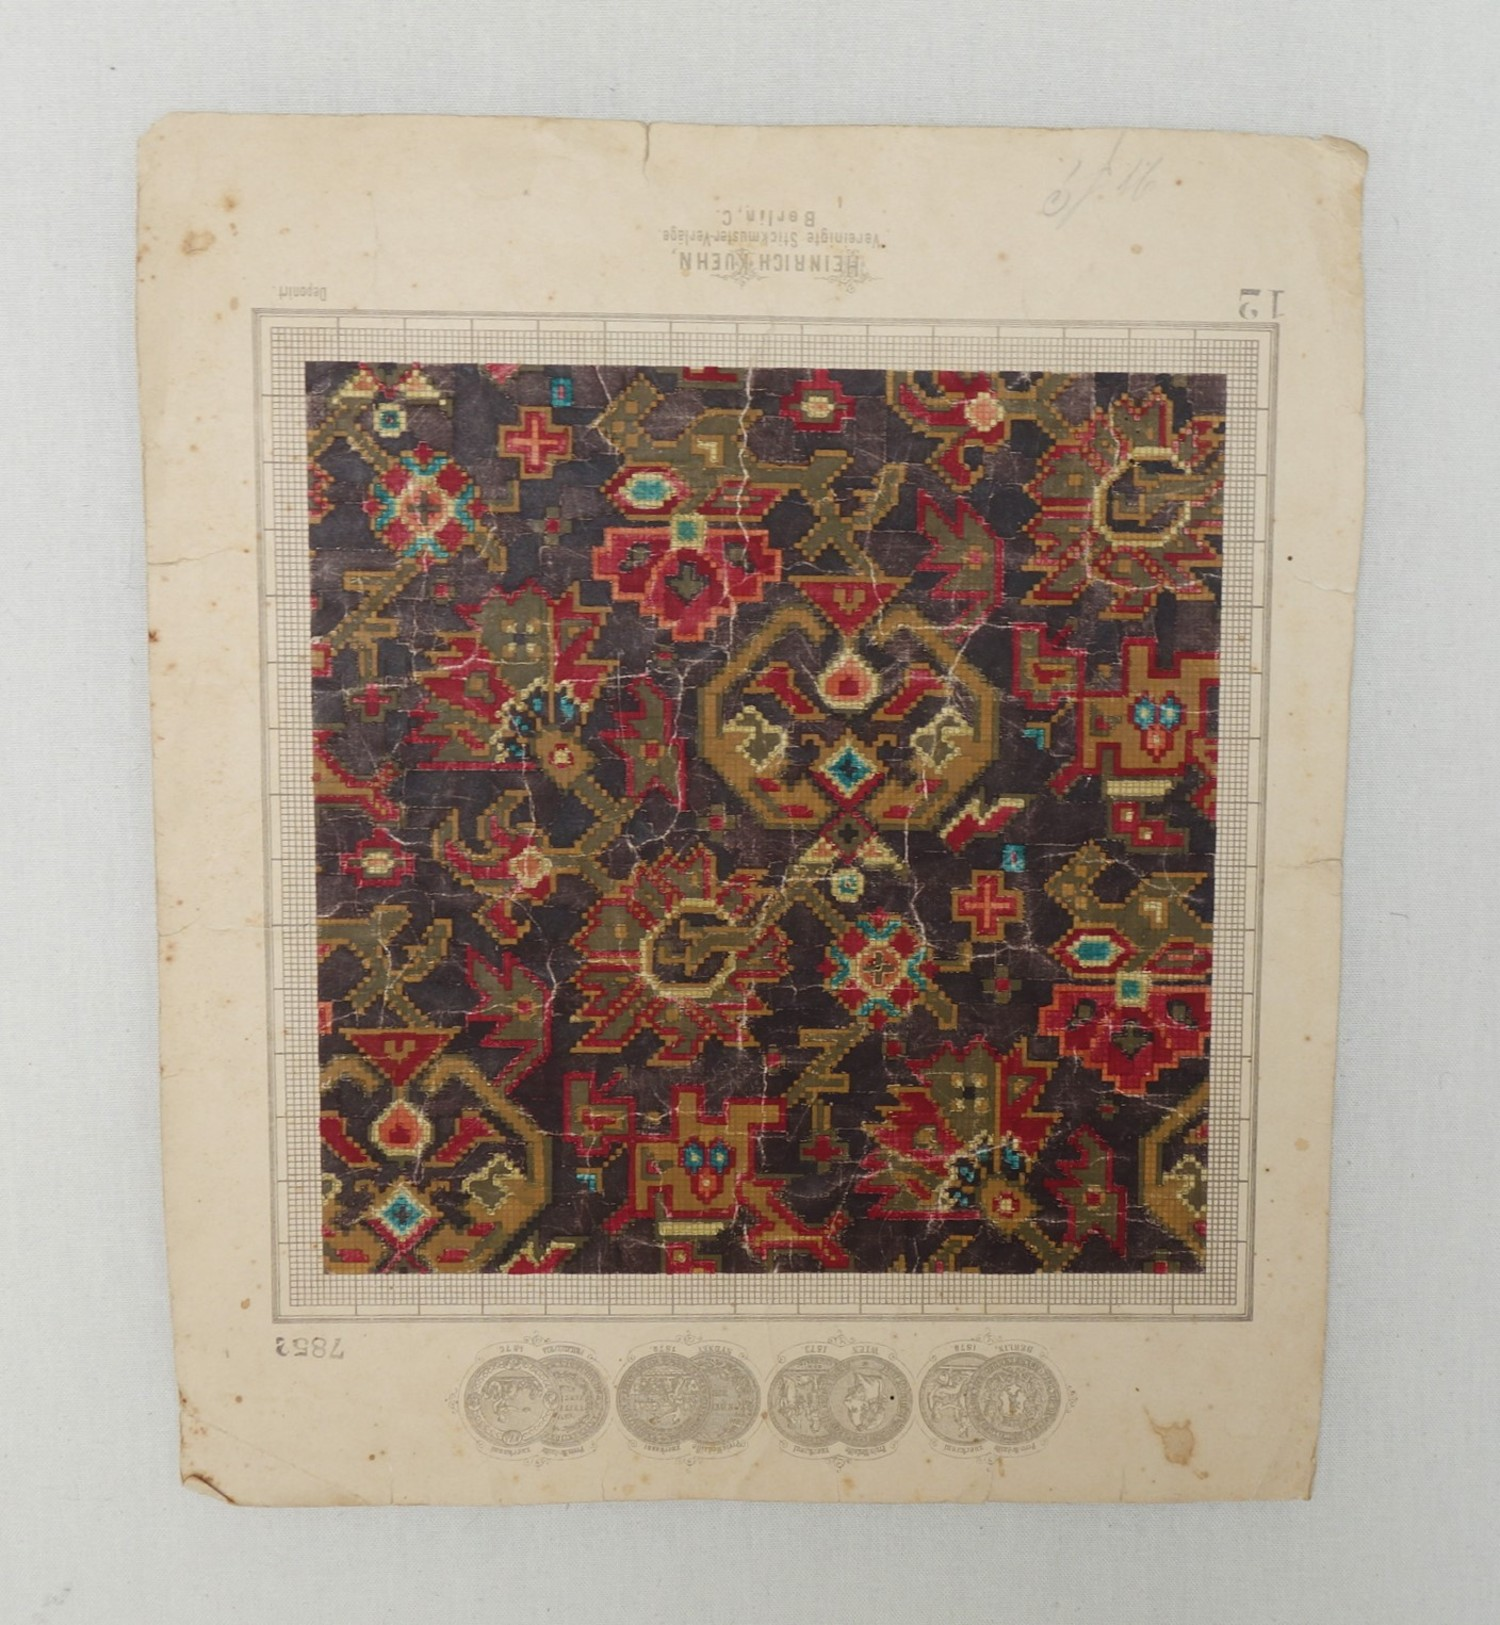 Berlin work chart with a design based on carpet motifs (Berlin, c. 1880; TRC 2018.1581).